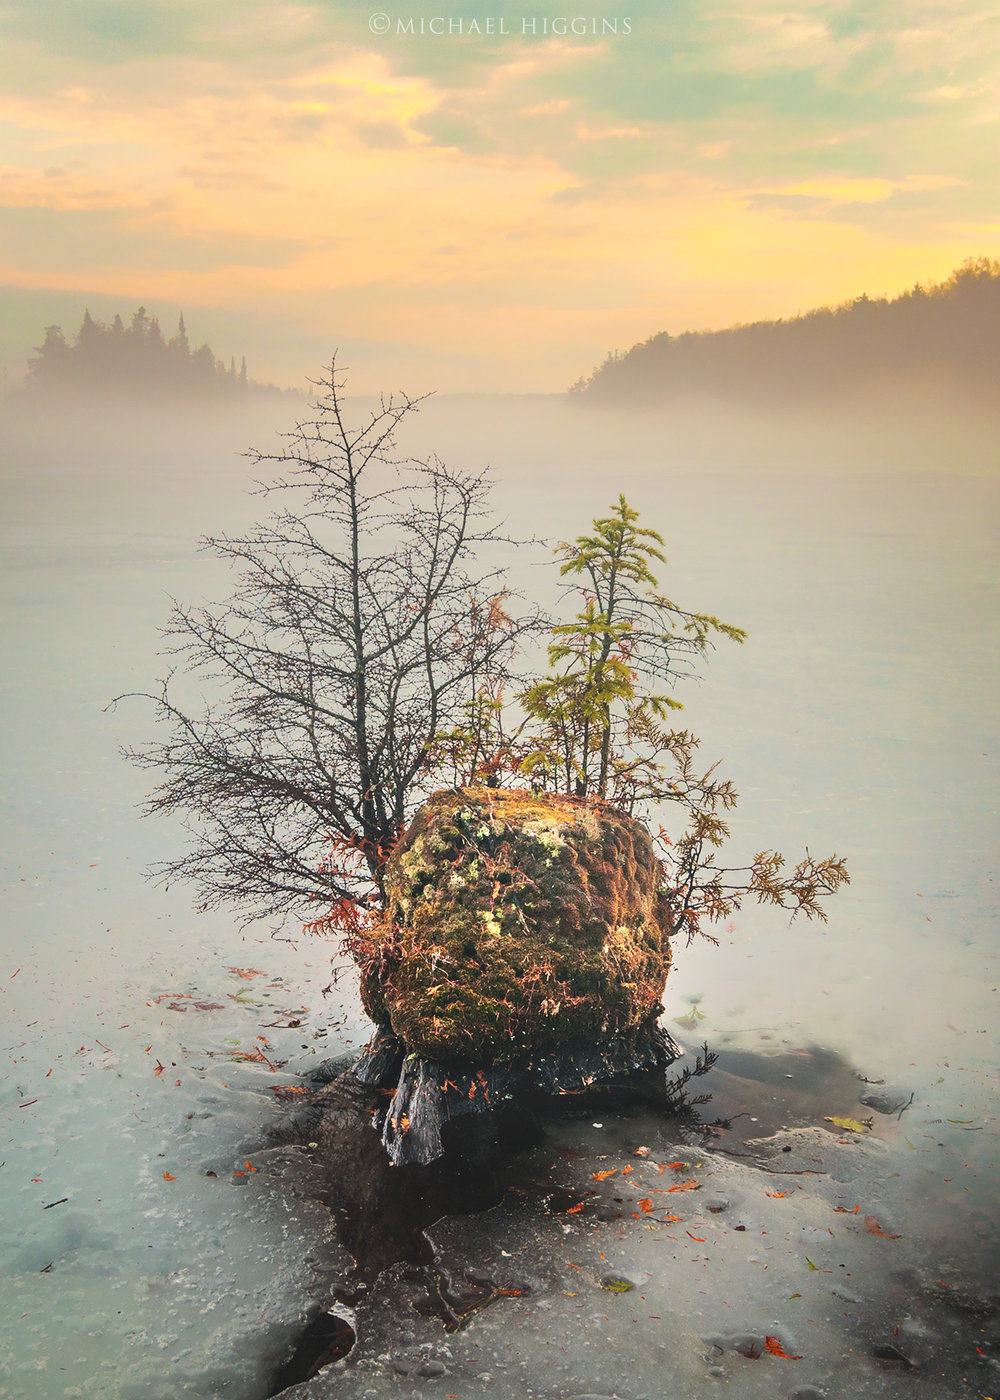 """Bonsai Island"" - Photographer: Michael Higgins"